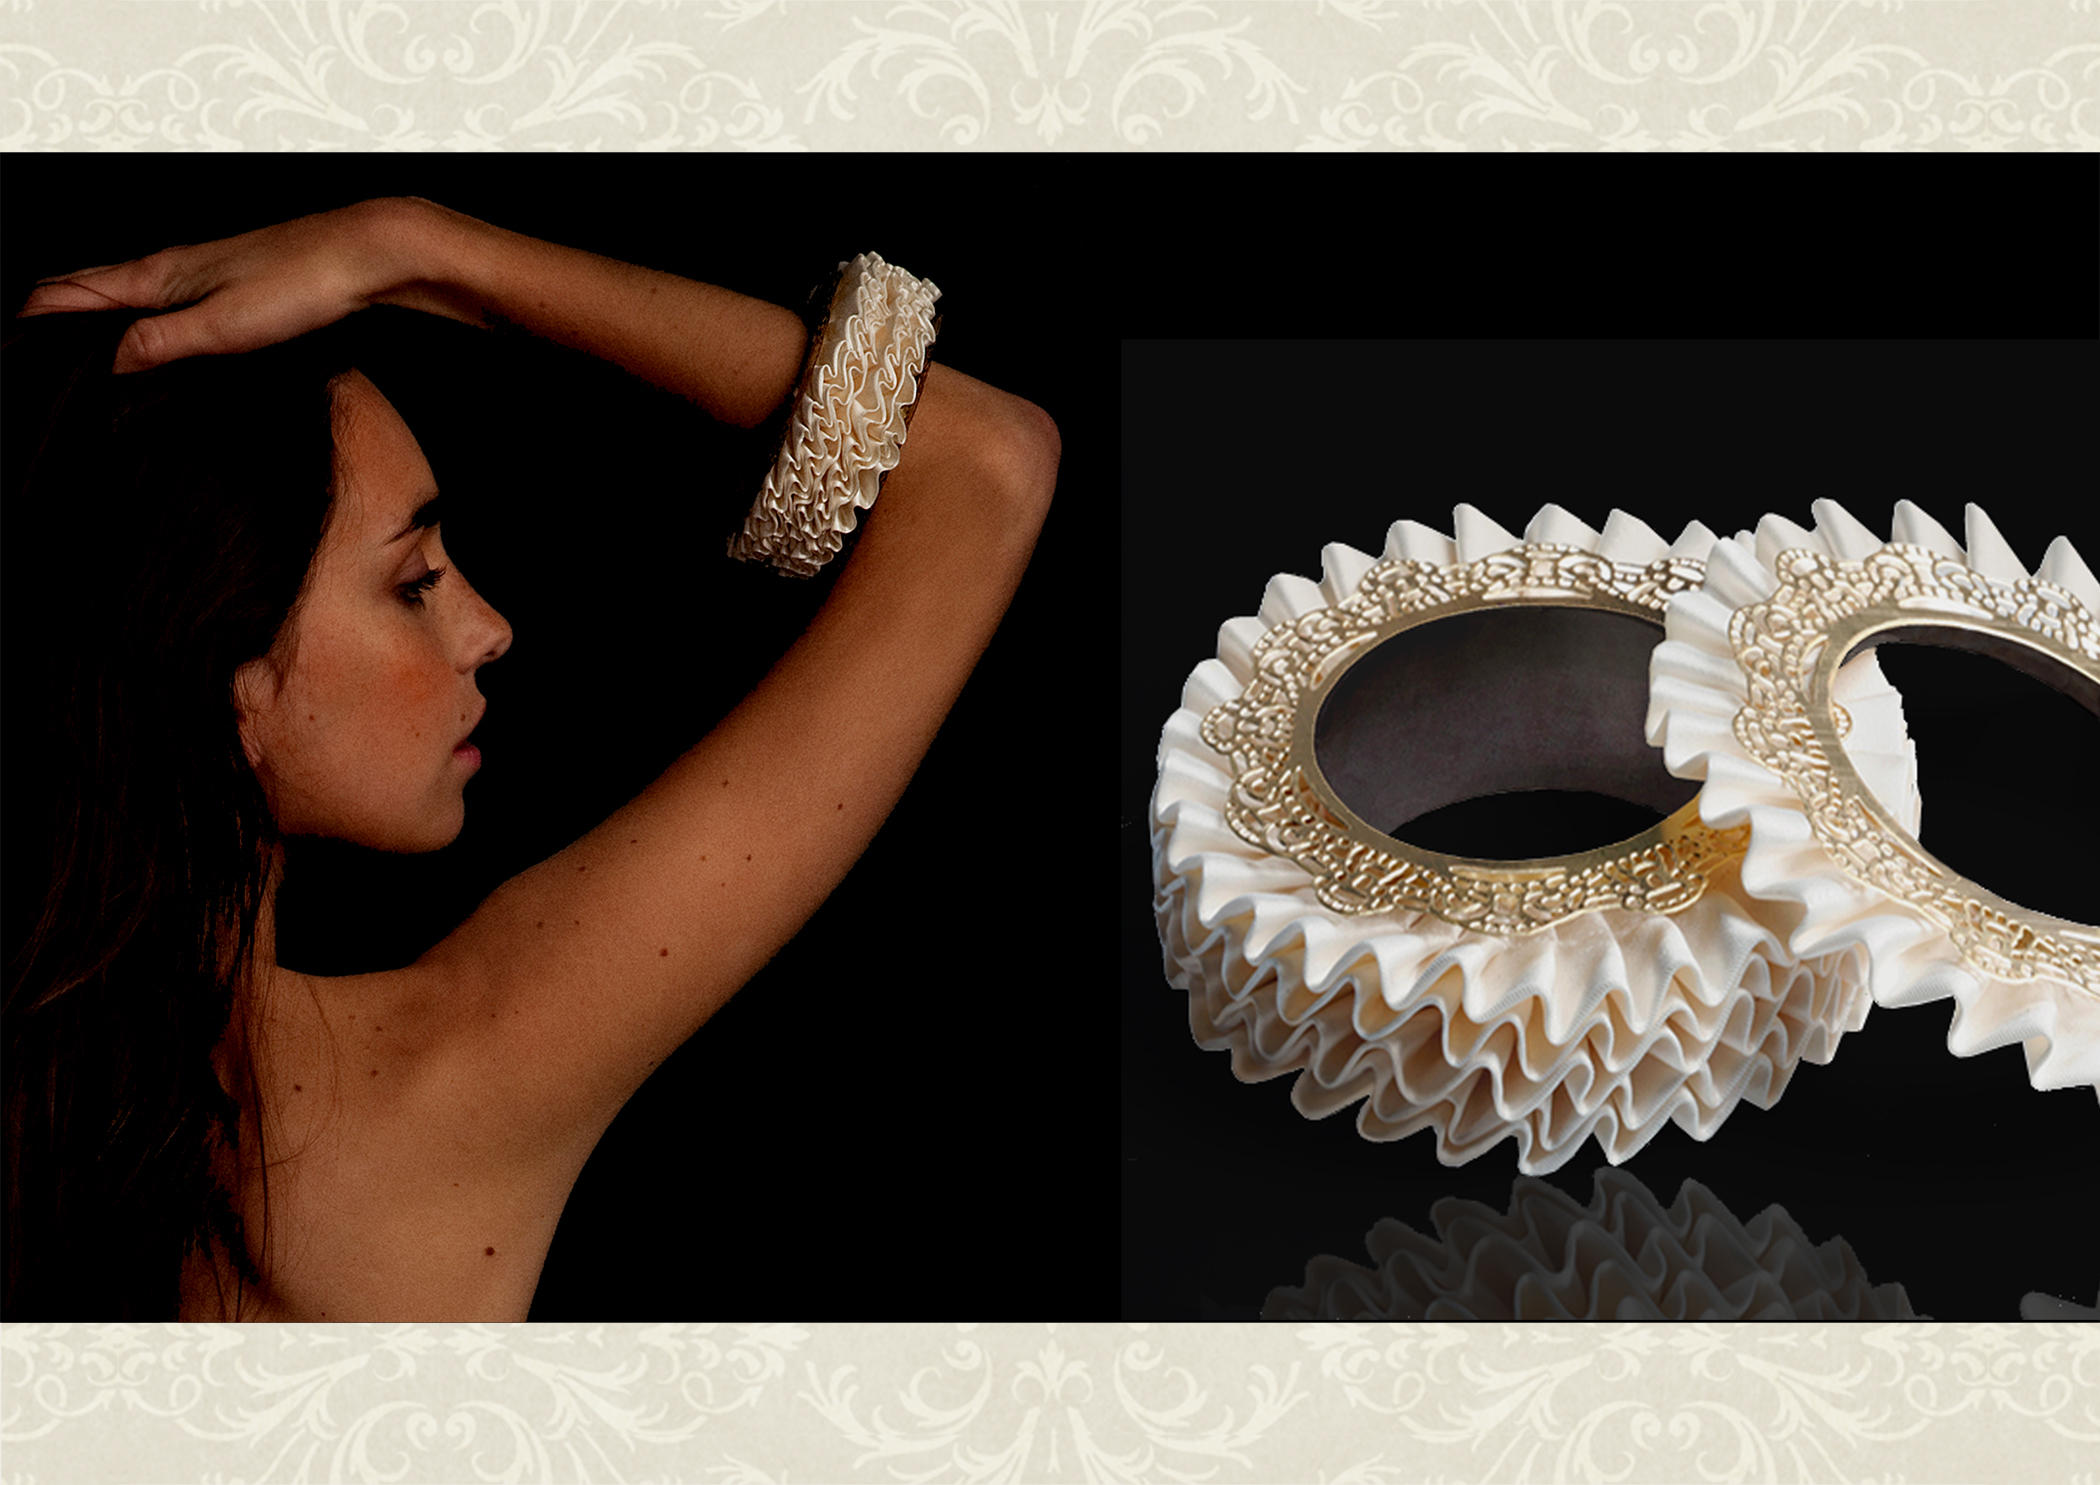 Julie Impens-picture 5 - ruffle bangle.jpg